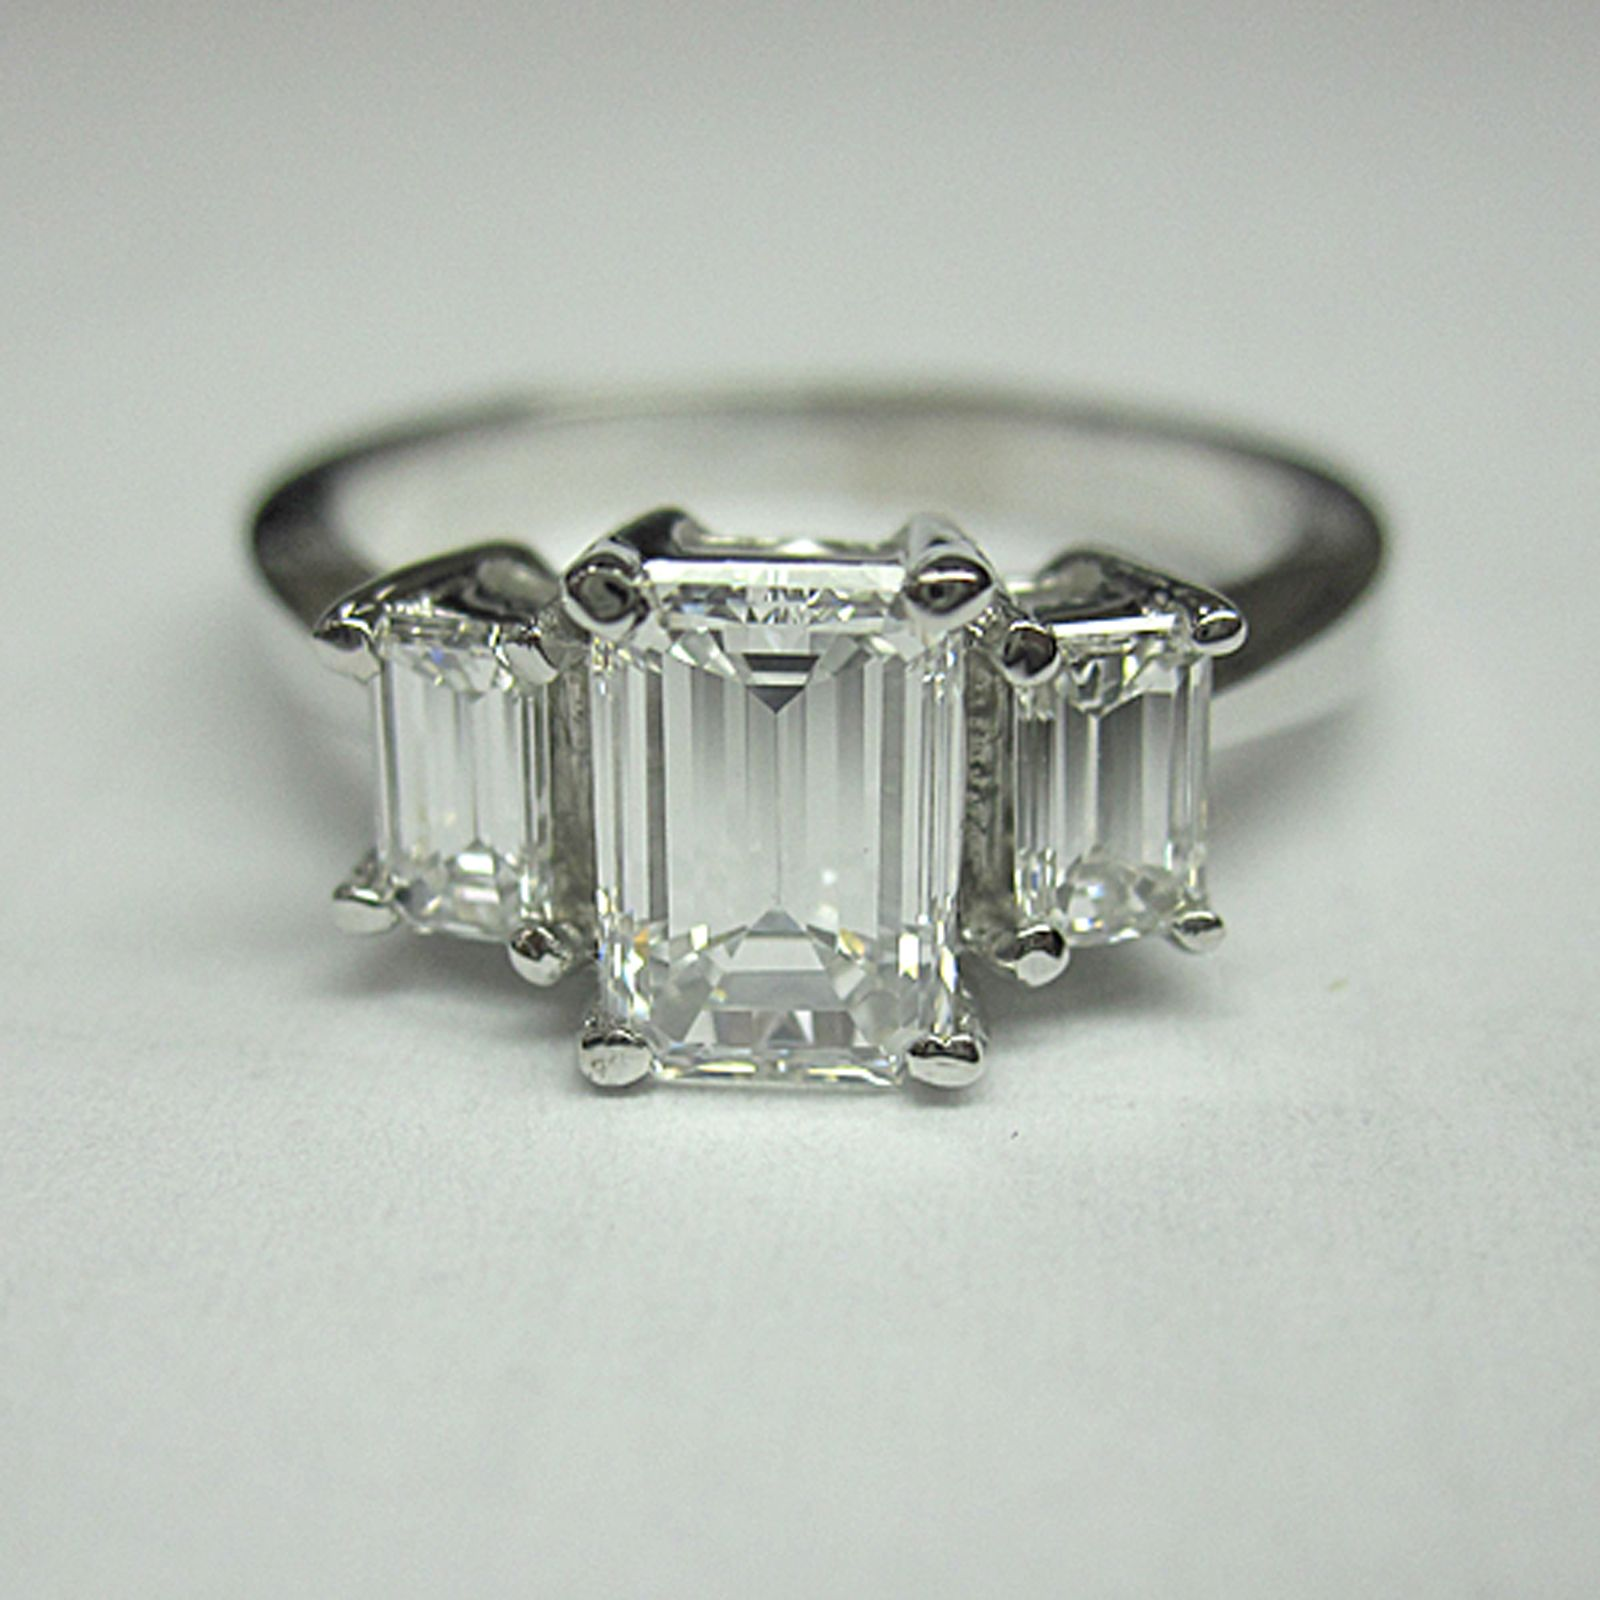 emerald cut 3 stone man made | diamond bridal engagement wedding